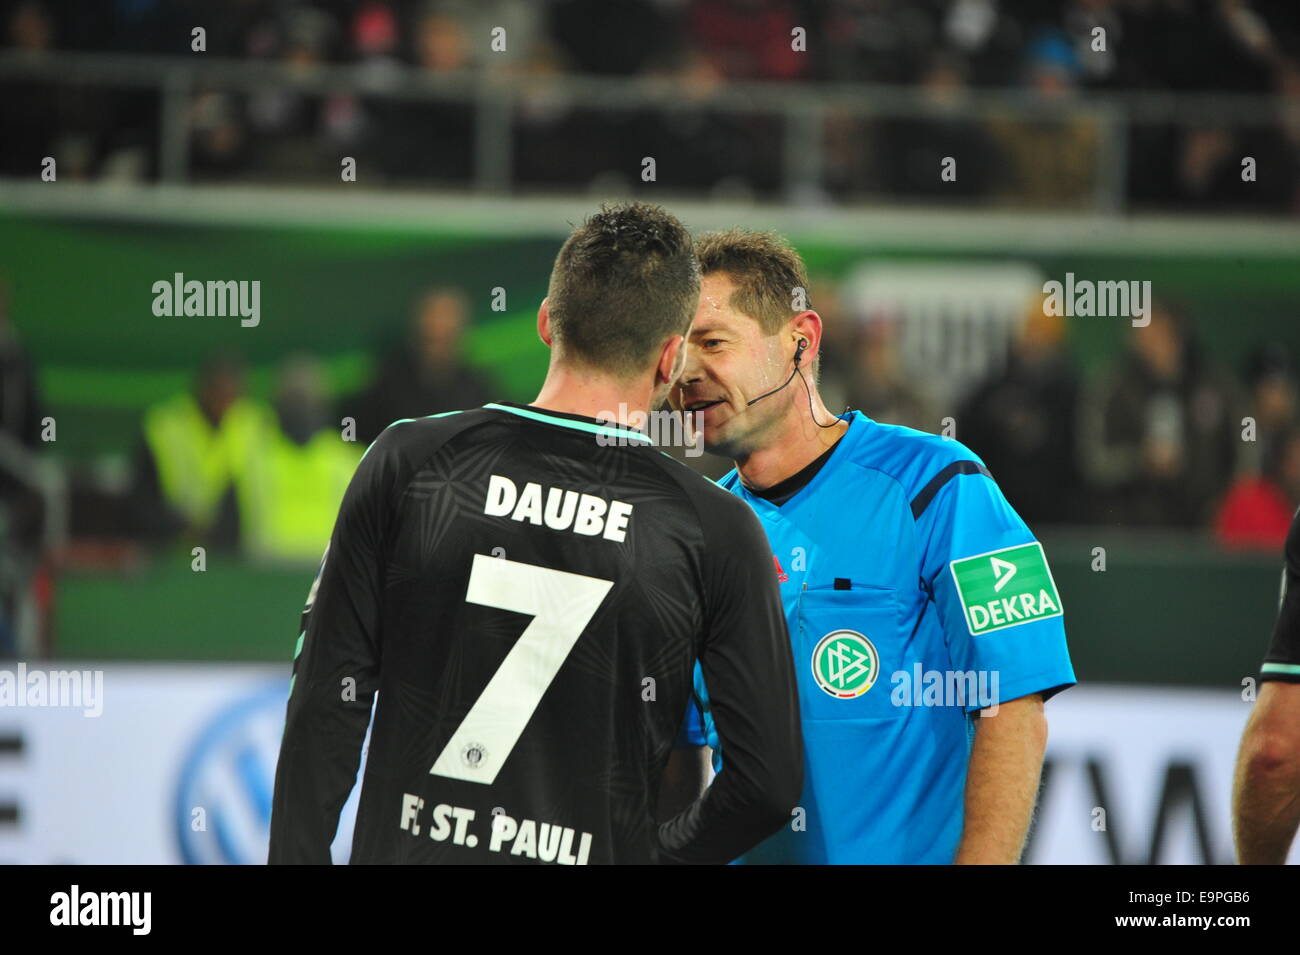 FC St. Pauli Player Daube in clinch with the referee Günter Perl, DFB Cup, Hamburg. Editorial use only. - Stock Image